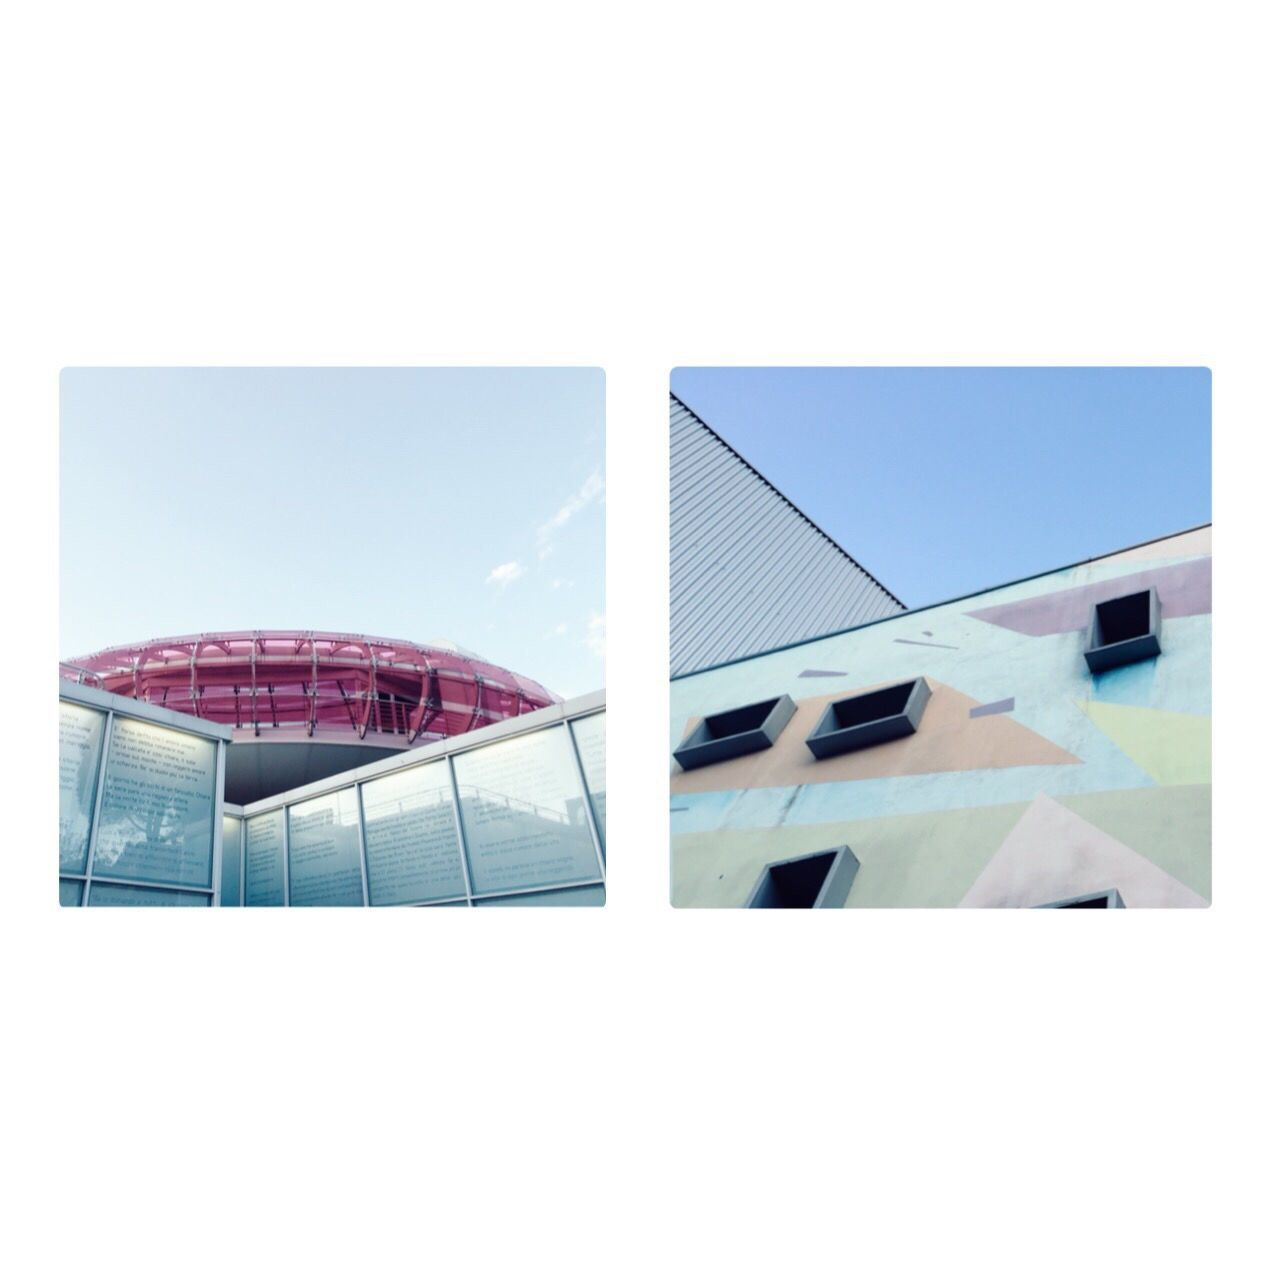 Cut And Paste Teatro Brecht and Mediateca Sandro Penna, by Claudia Ioan Architecture Building Exterior Built Structure No People Day Outdoors City Modern Perugia Diptych Break The Mold VSCO The Secret Spaces EyeEm Diversity Art Is Everywhere Cityscape Urban The Architect - 2017 EyeEm Awards